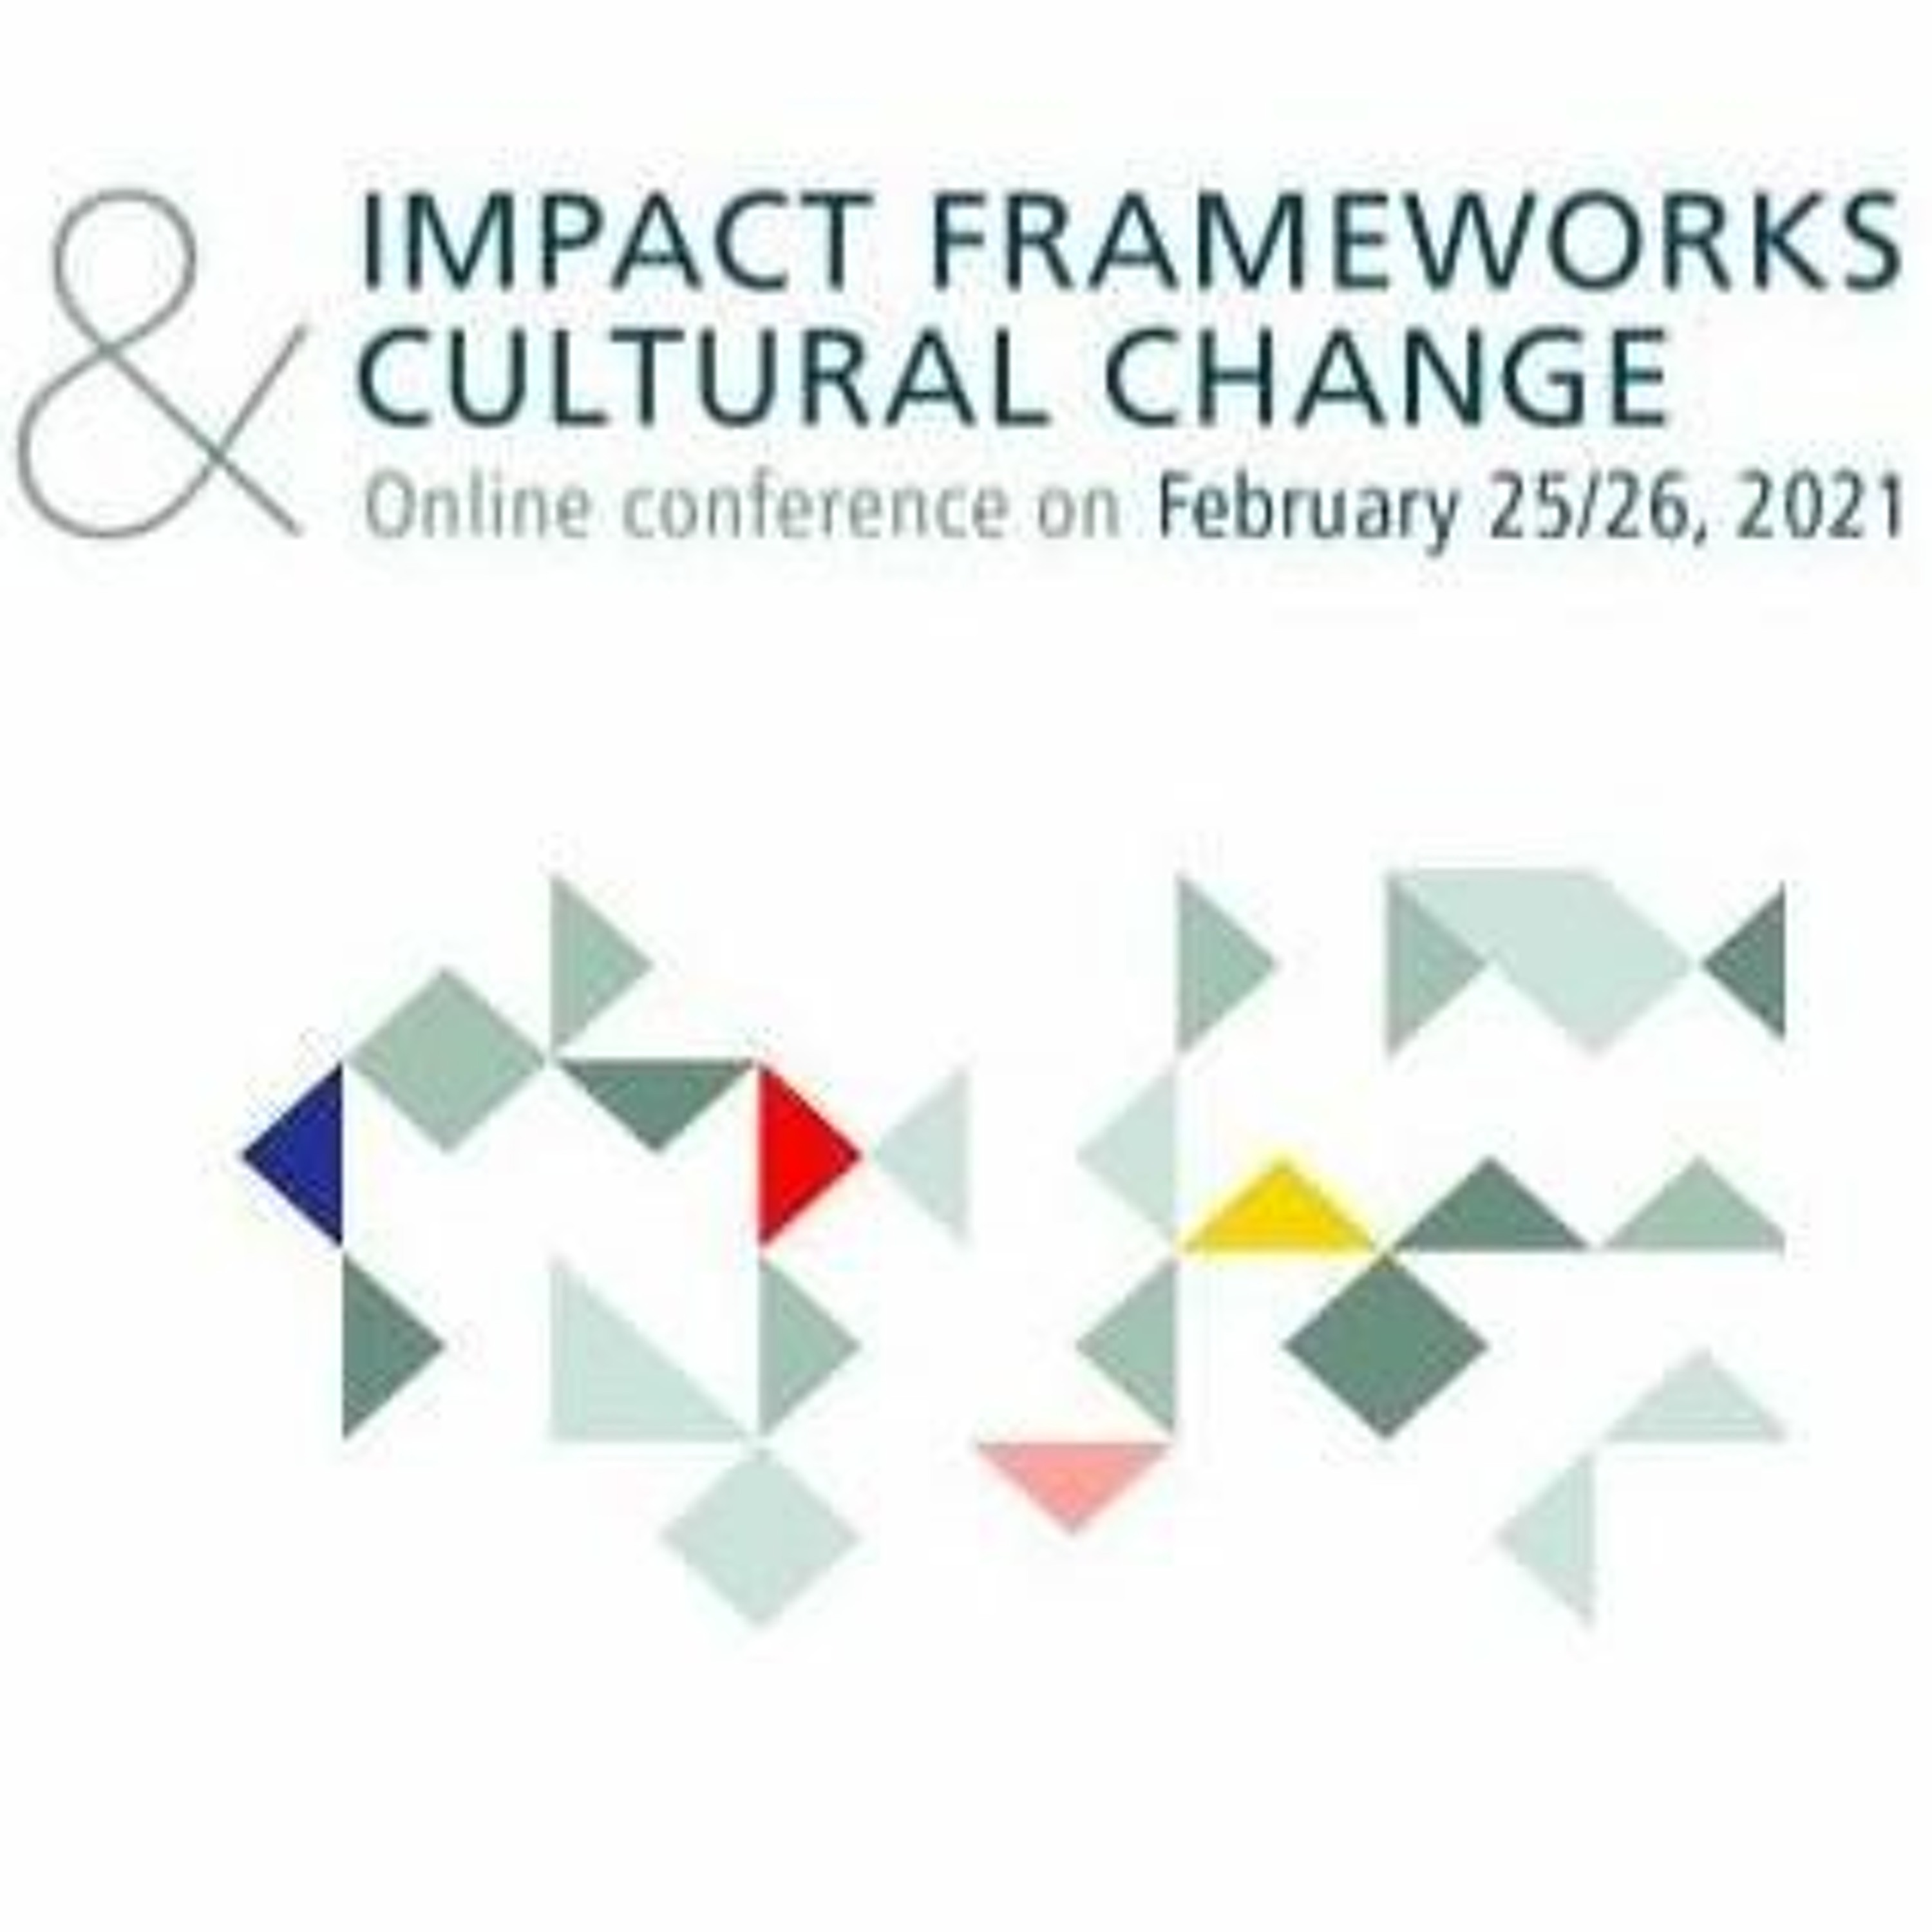 Final reflections from #ImpactFrameworks